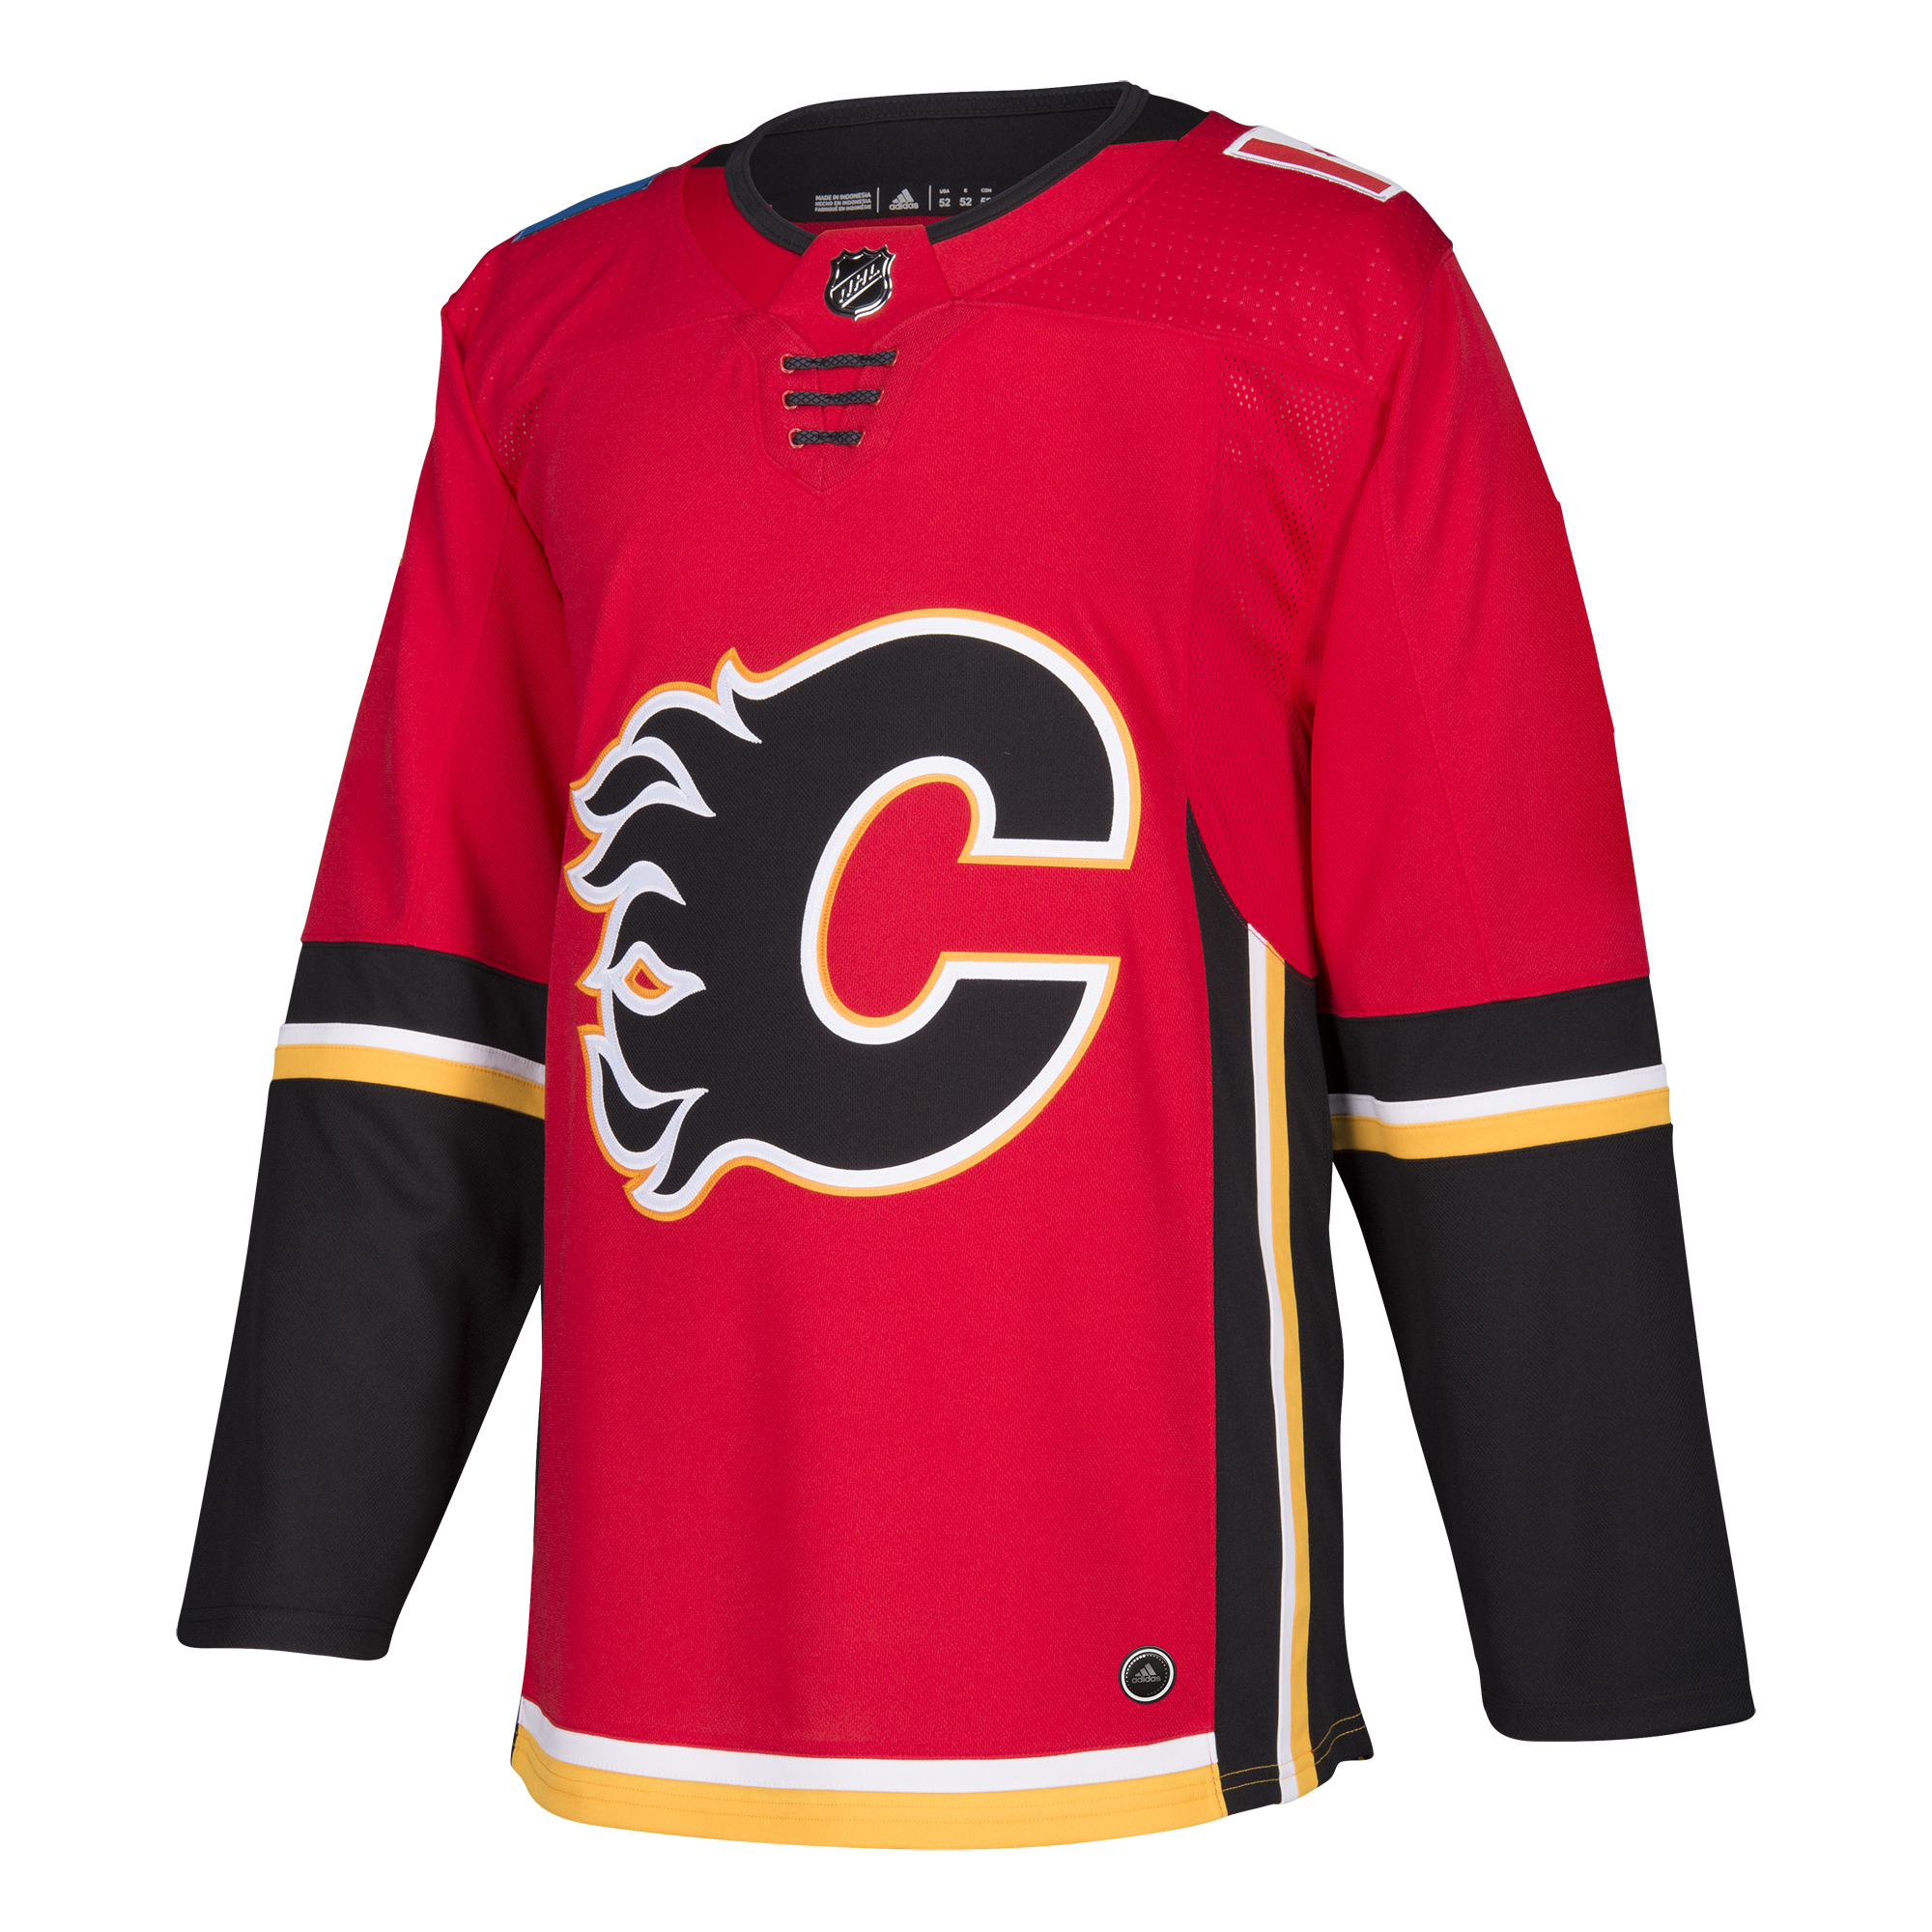 Calgary Flames Adidas NHL Men's Climalite Authentic Team Hockey Jersey